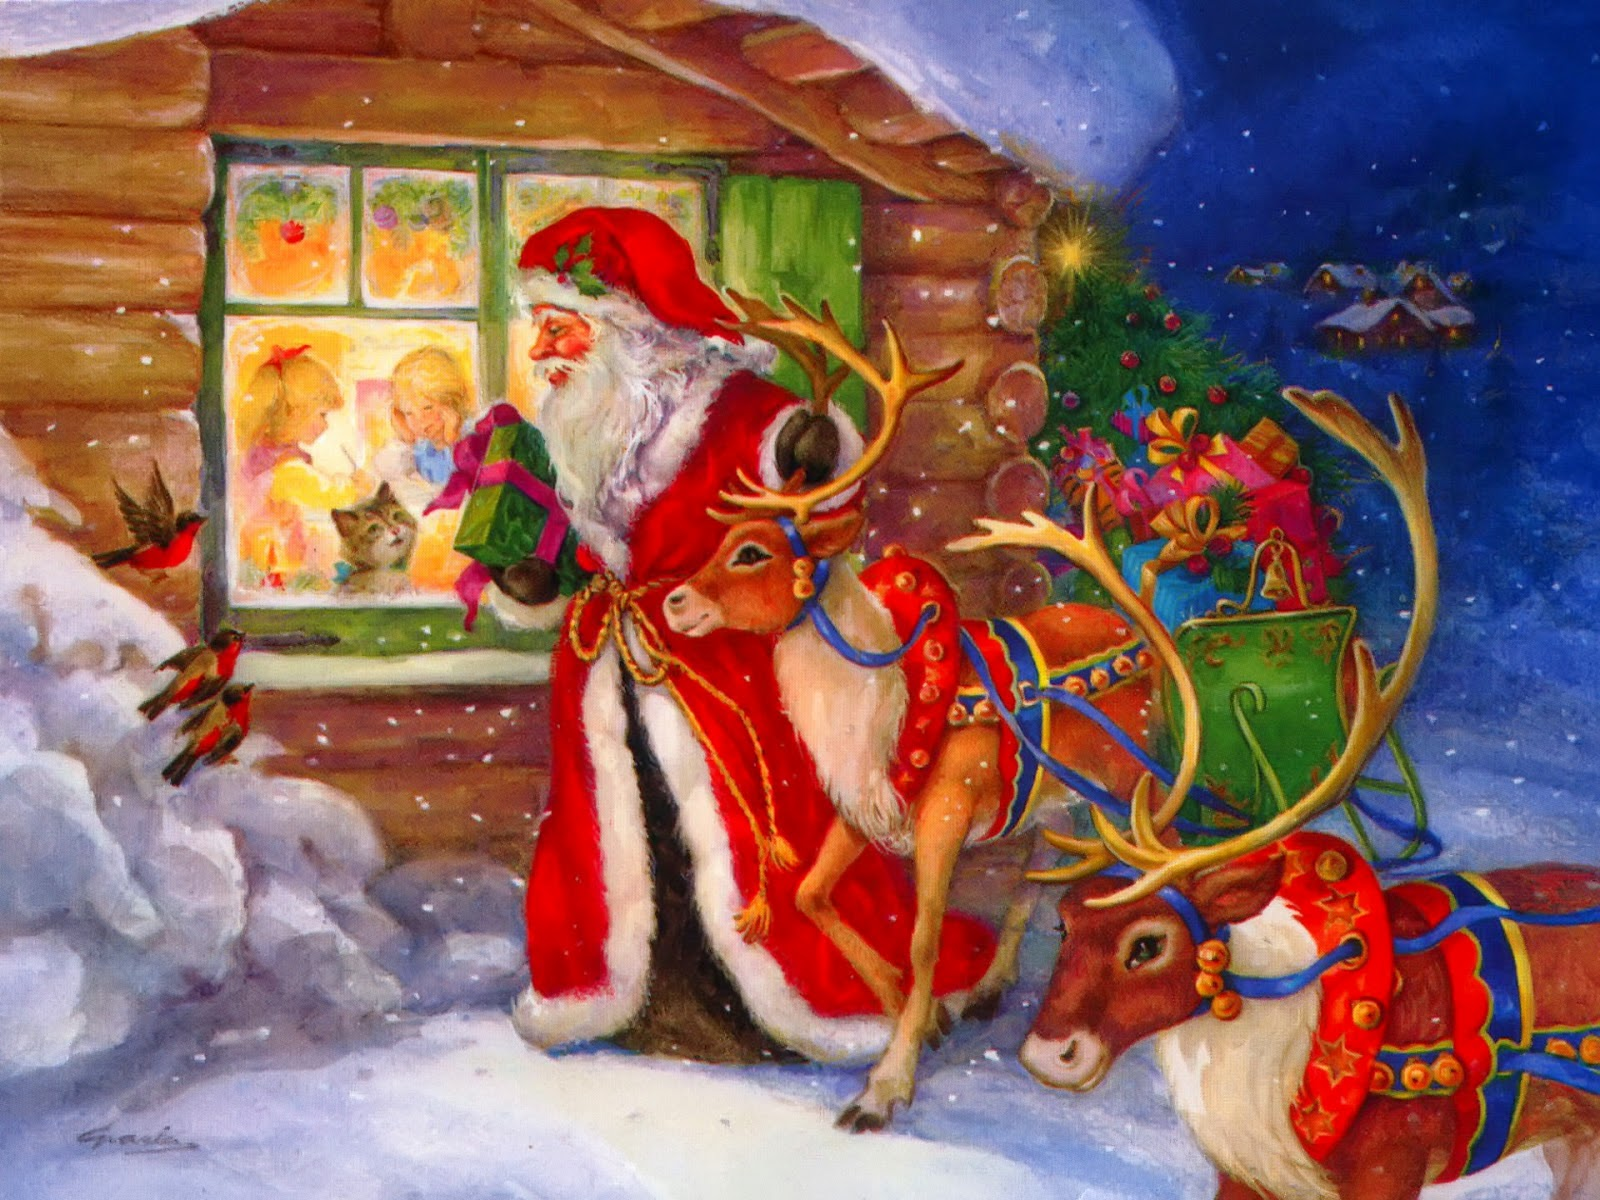 Santa-with-reindeer-watches-kids-through-window-tosecretly-place-gifts-cartoon-image.jpg